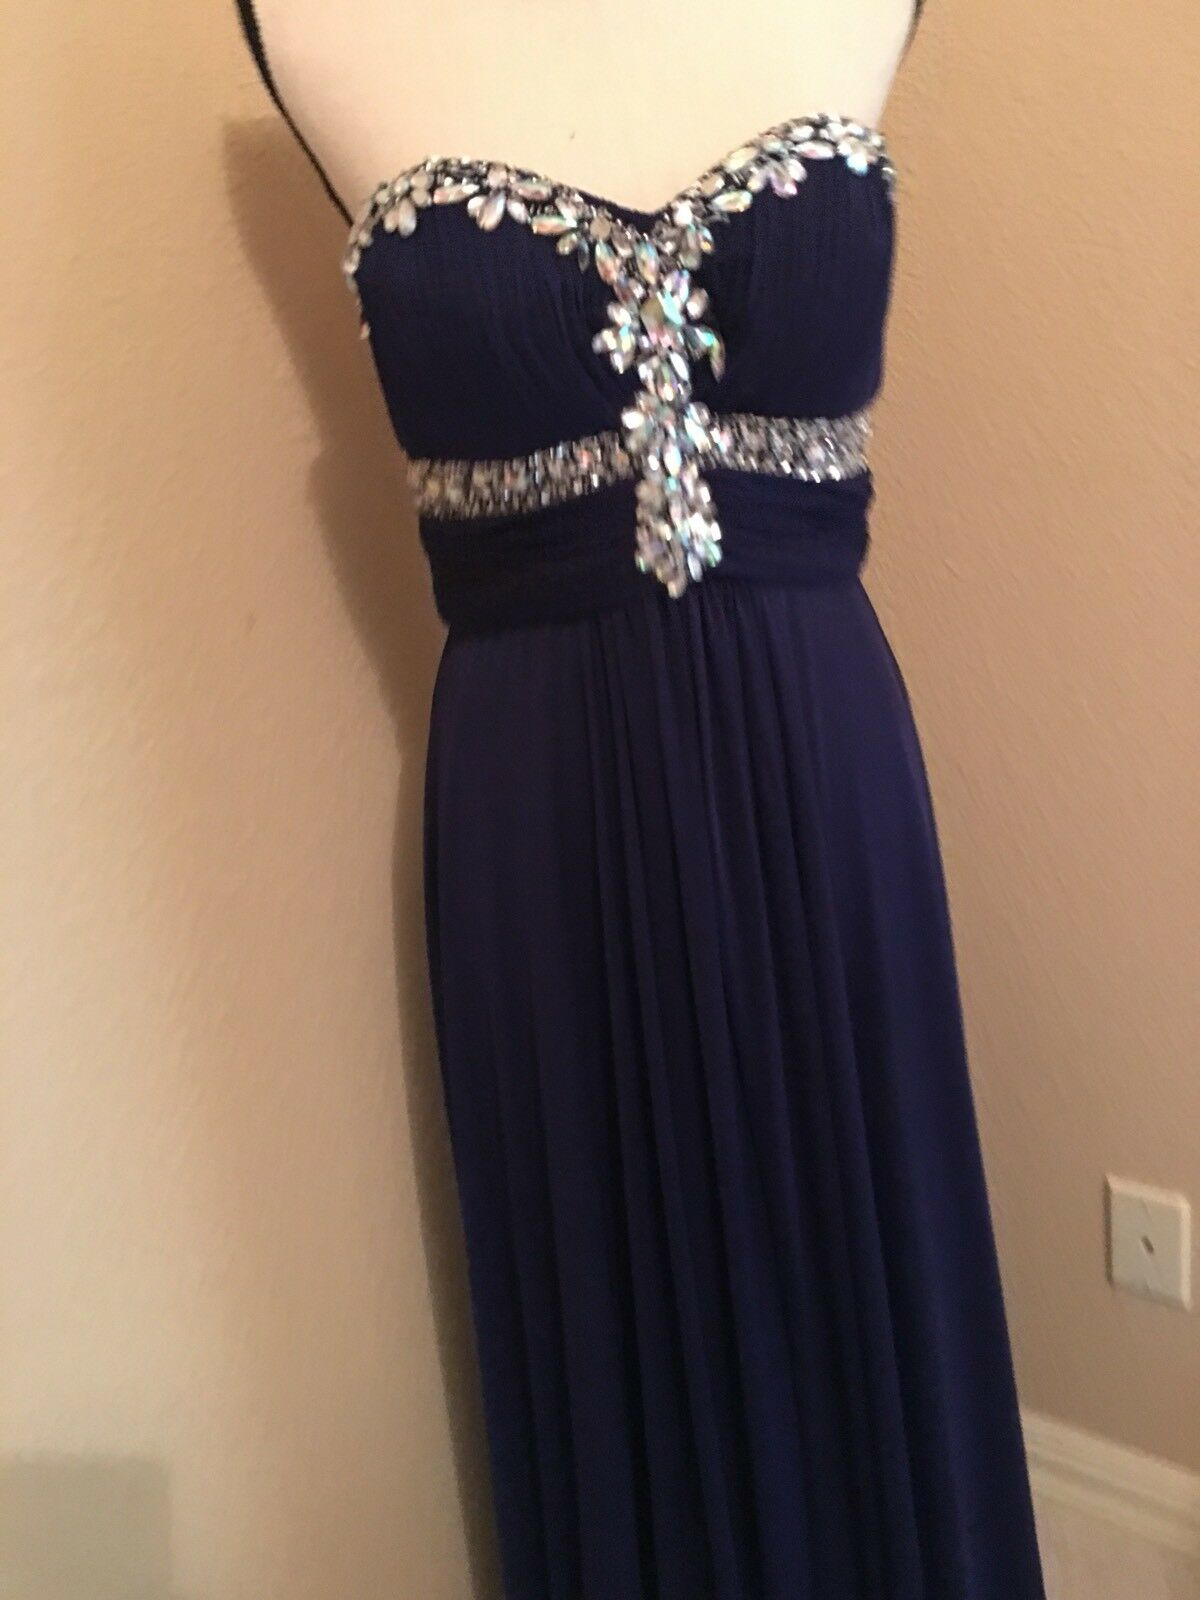 Designer Cache Long Evening Dress Size Size Size 8 Rhinestone Bodice 84808c